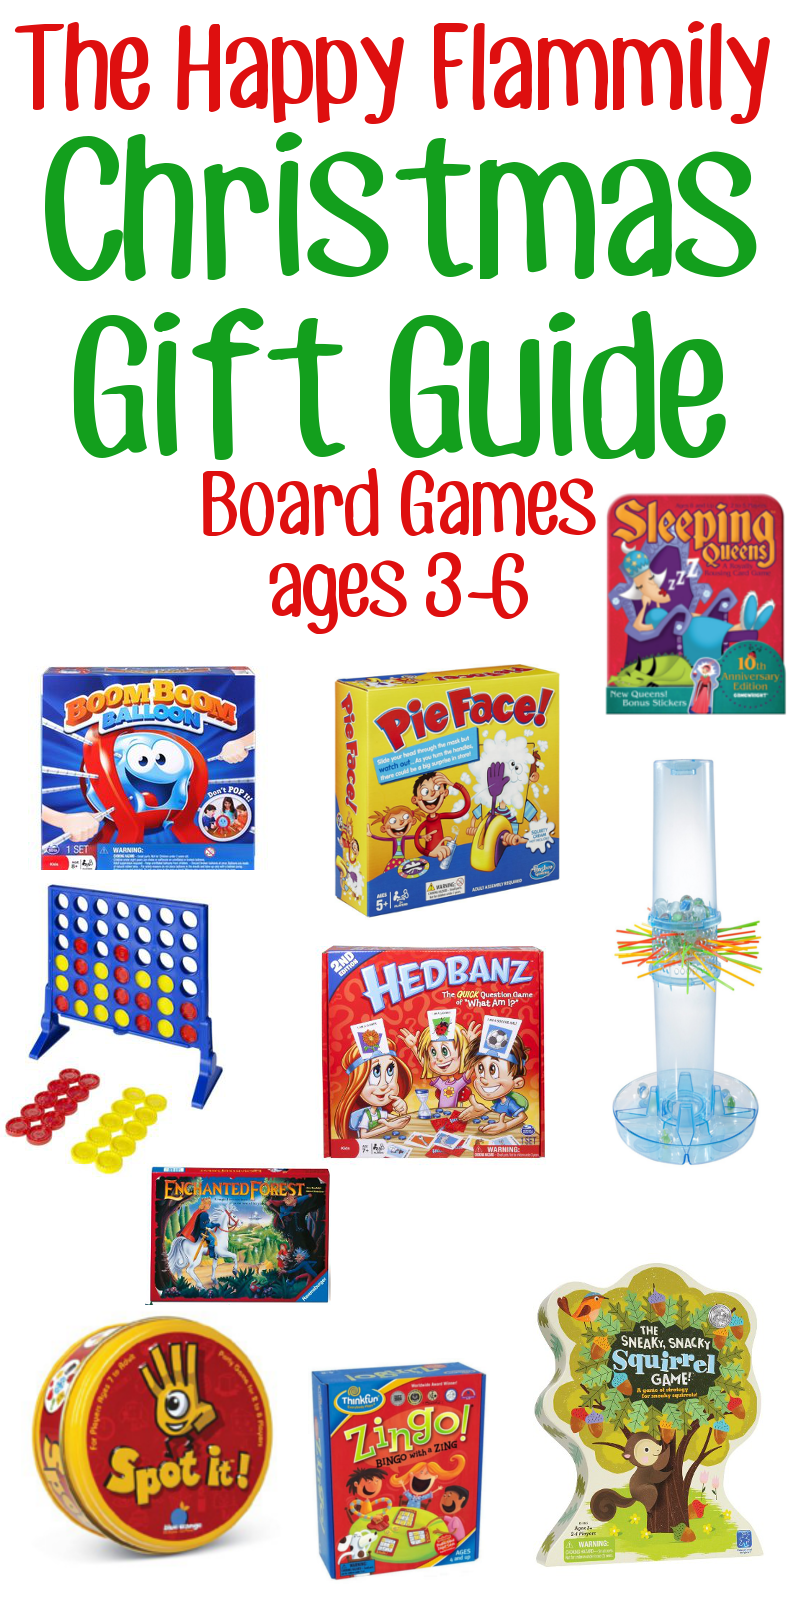 Board Game Gift Guide Ages 3-6 - The Happy Flammily